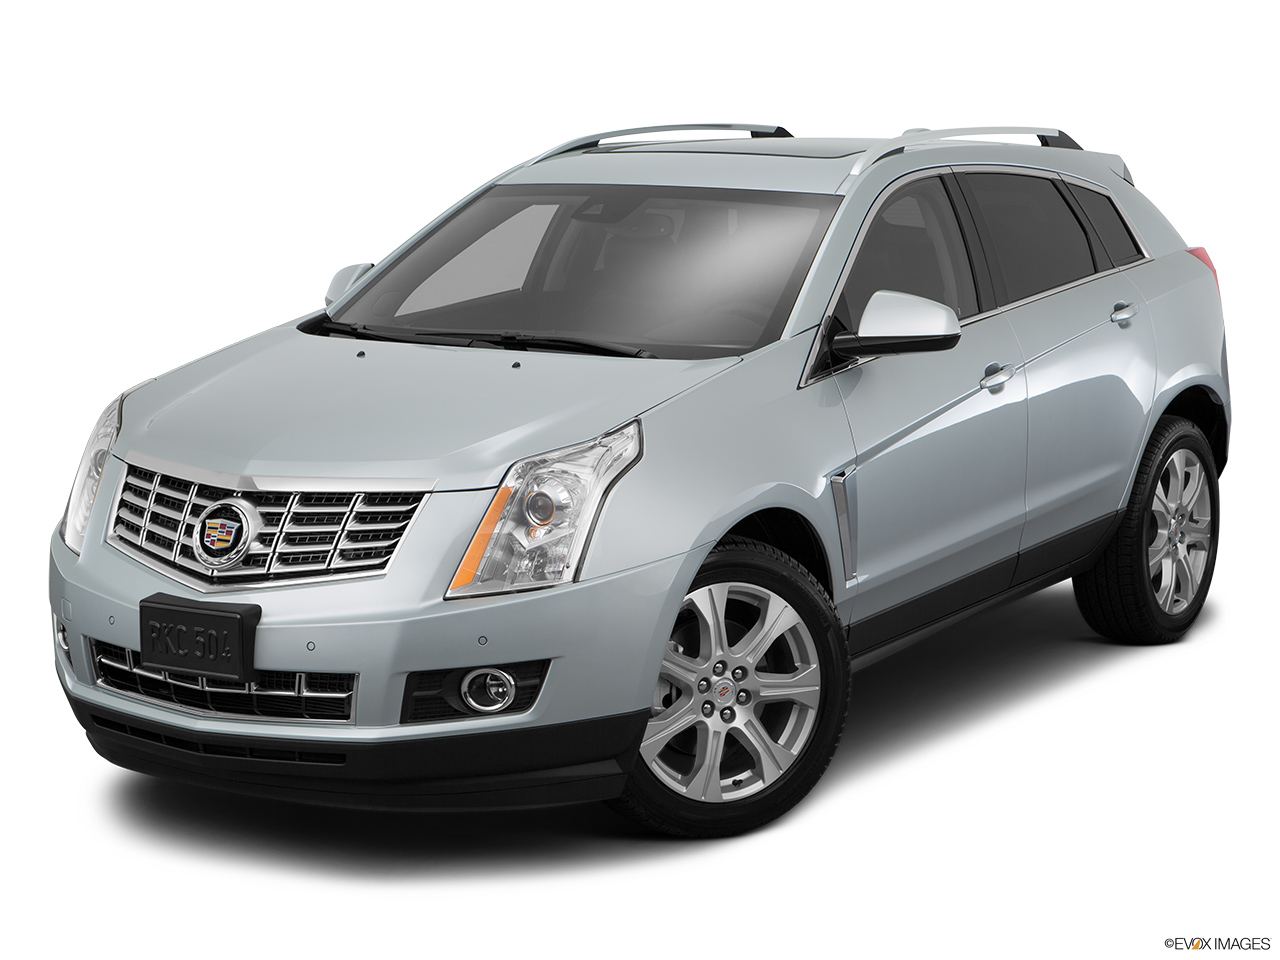 2016 cadillac srx prices in bahrain gulf specs reviews. Black Bedroom Furniture Sets. Home Design Ideas